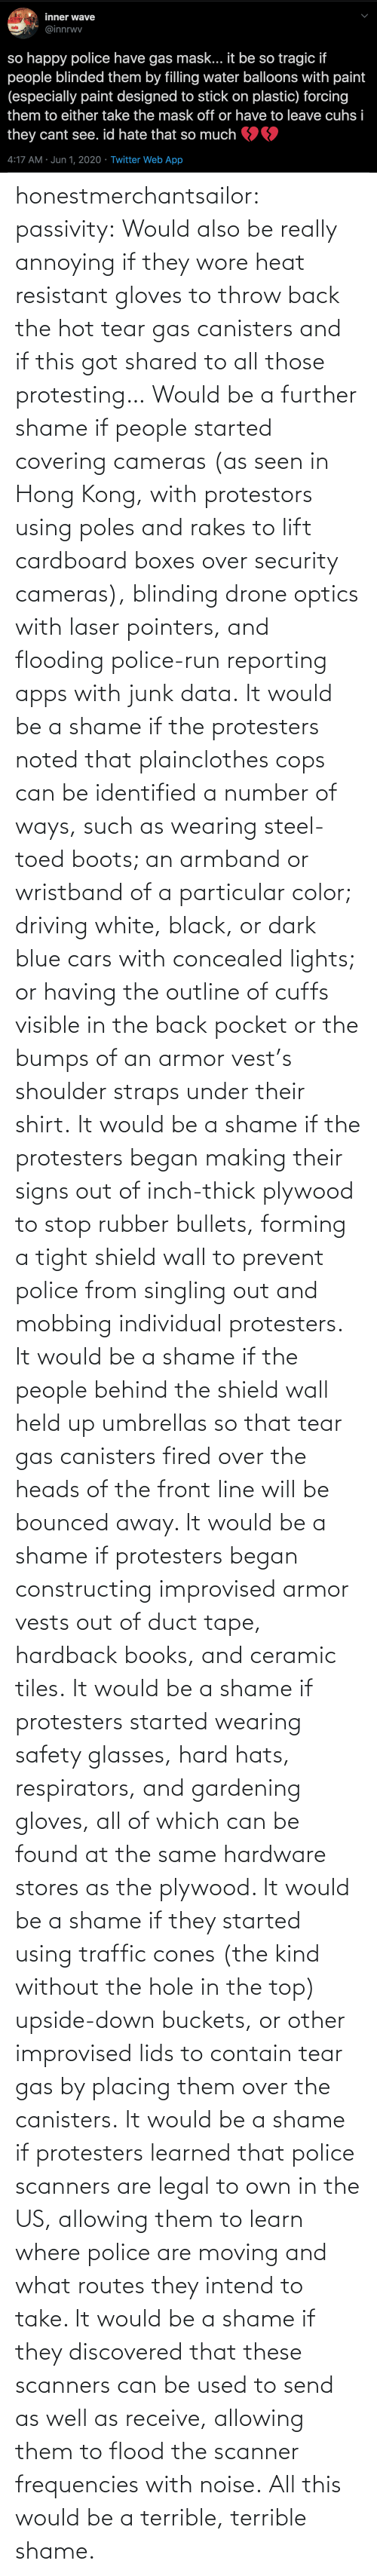 over: honestmerchantsailor: passivity: Would also be really annoying if they wore heat resistant gloves to throw back the hot tear gas canisters and if this got shared to all those protesting… Would be a further shame if people started covering cameras (as seen in Hong Kong, with protestors using poles and rakes to lift cardboard boxes over security cameras), blinding drone optics with laser pointers, and flooding police-run reporting apps with junk data. It would be a shame if the protesters noted that plainclothes cops can be identified a number of ways, such as wearing steel-toed boots; an armband or wristband of a particular color; driving white, black, or dark blue cars with concealed lights; or having the outline of cuffs visible in the back pocket or the bumps of an armor vest's shoulder straps under their shirt. It would be a shame if the protesters began making their signs out of inch-thick plywood to stop rubber bullets, forming a tight shield wall to prevent police from singling out and mobbing individual protesters. It would be a shame if the people behind the shield wall held up umbrellas so that tear gas canisters fired over the heads of the front line will be bounced away. It would be a shame if protesters began constructing improvised armor vests out of duct tape, hardback books, and ceramic tiles. It would be a shame if protesters started wearing safety glasses, hard hats, respirators, and gardening gloves, all of which can be found at the same hardware stores as the plywood. It would be a shame if they started using traffic cones (the kind without the hole in the top) upside-down buckets, or other improvised lids to contain tear gas by placing them over the canisters. It would be a shame if protesters learned that police scanners are legal to own in the US, allowing them to learn where police are moving and what routes they intend to take. It would be a shame if they discovered that these scanners can be used to send as well as receive, allowing them to flood the scanner frequencies with noise. All this would be a terrible, terrible shame.